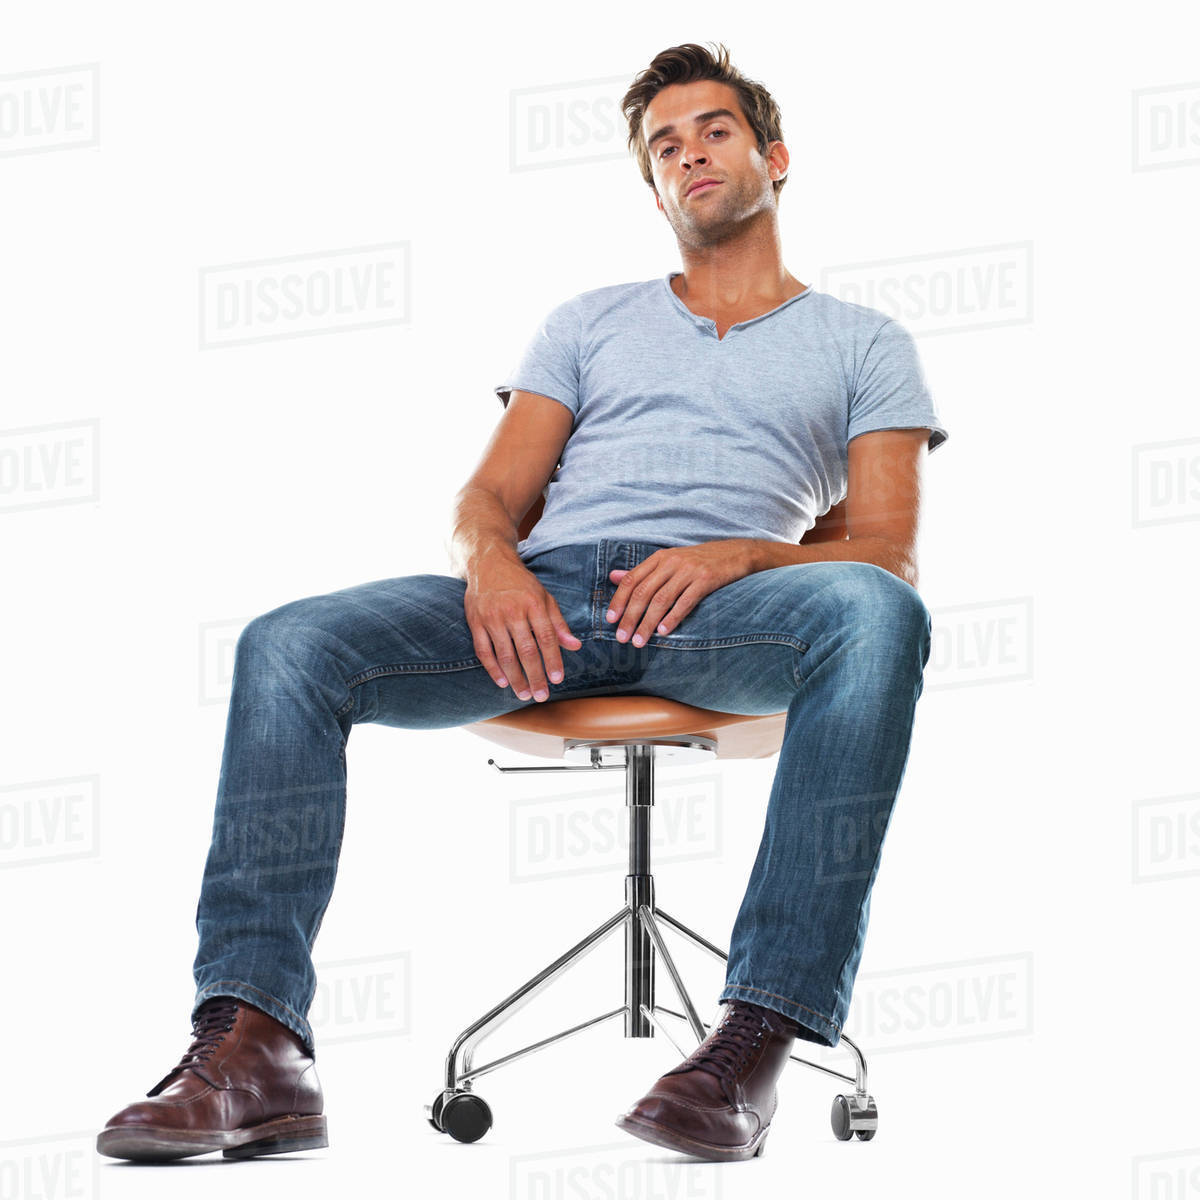 Marvelous Portrait Of Smart Young Man Sitting Comfortably On Chair Against D1028 55 790 Caraccident5 Cool Chair Designs And Ideas Caraccident5Info